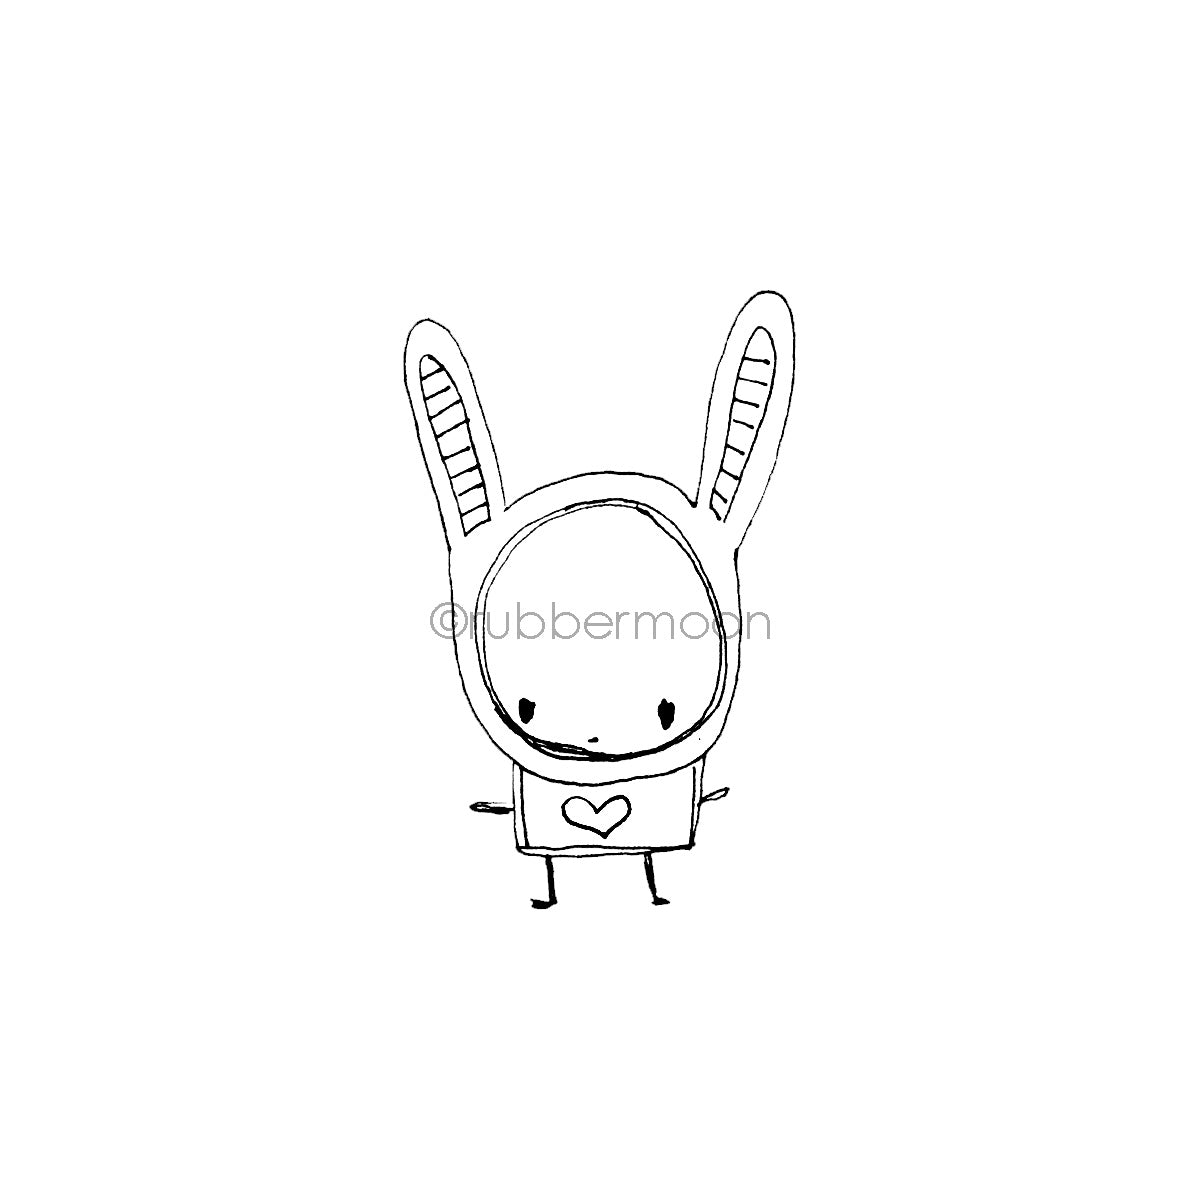 Kecia Deveney | KD11F - Bunny Misfit - Rubber Art Stamp